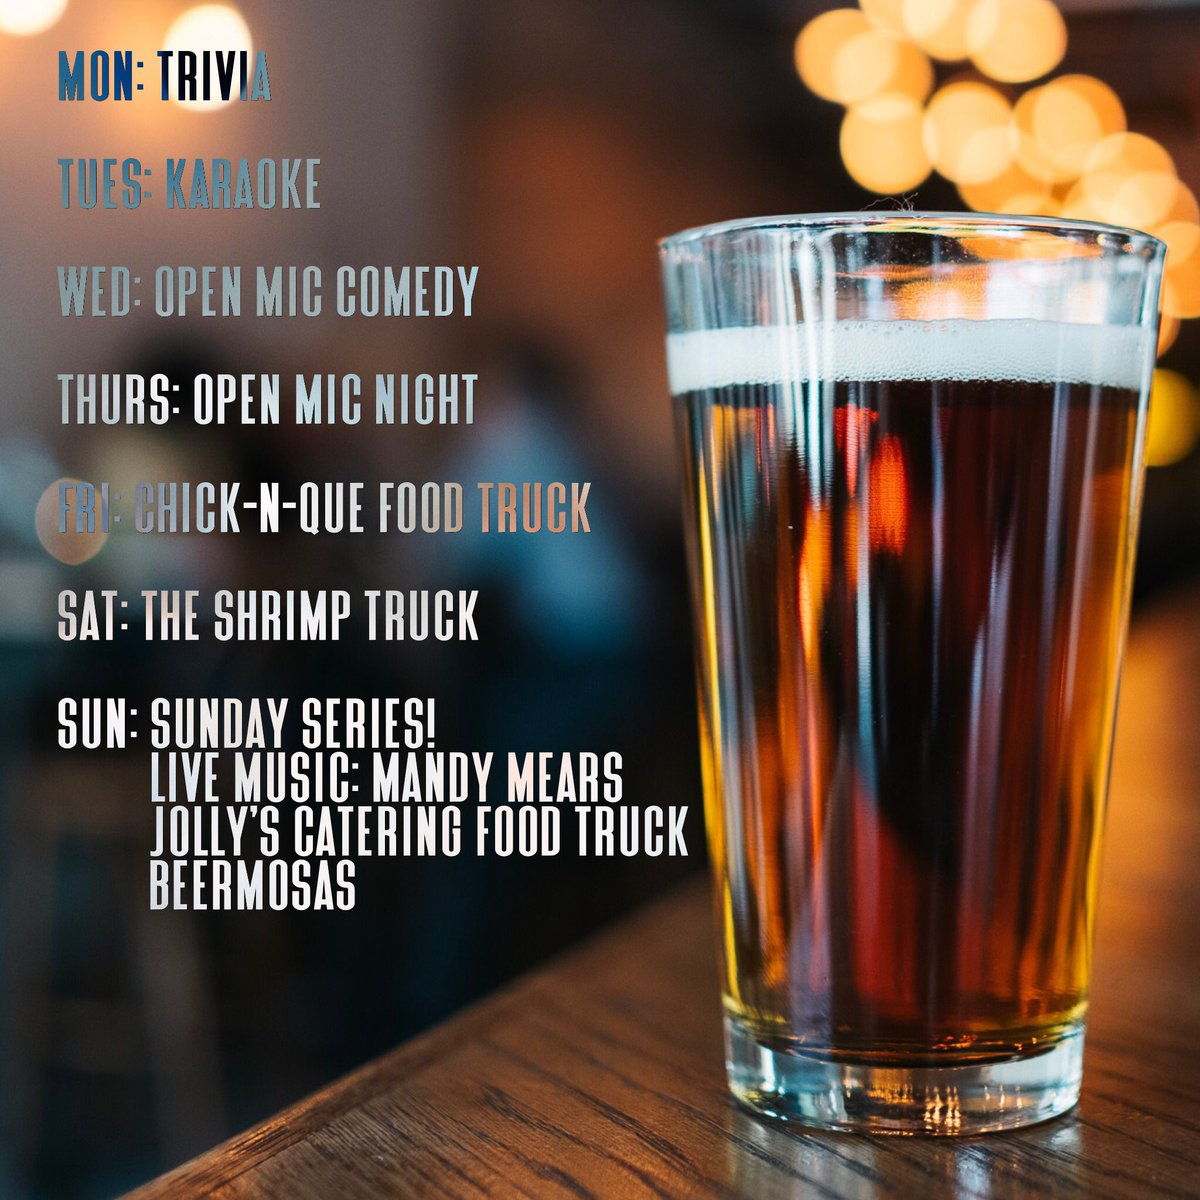 This week at PSBC: Mon: Team Trivia 7pm Tues: karaoke 7pm Wed: open mic comedy 8pm Thurs: open mic night 8pm Fri: chick-n-que food truck 6pm Sat: the shrimp truck 6pm Sun: Sunday Series!          Live music: Mandy Mears 4pm          Jolly's catering food truck          BeerMosas